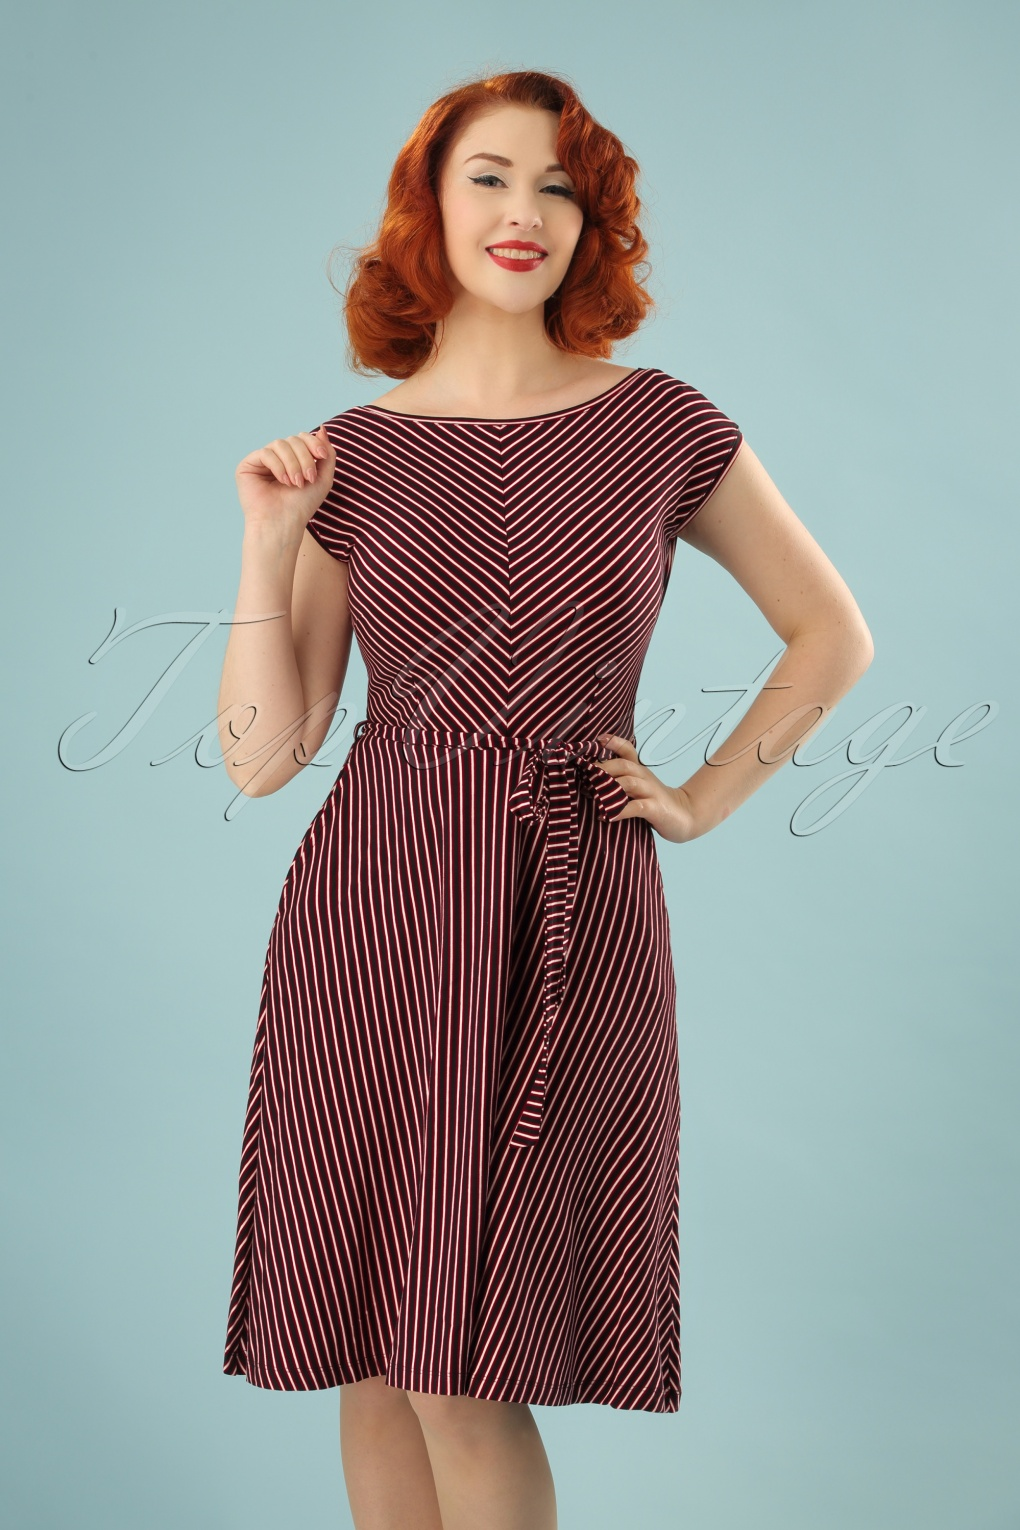 60s Plus Size Retro Dresses, Clothing, Costumes | 70s Dresses 70s Grace Slim Shady Swing Dress in Ruby Red £70.56 AT vintagedancer.com